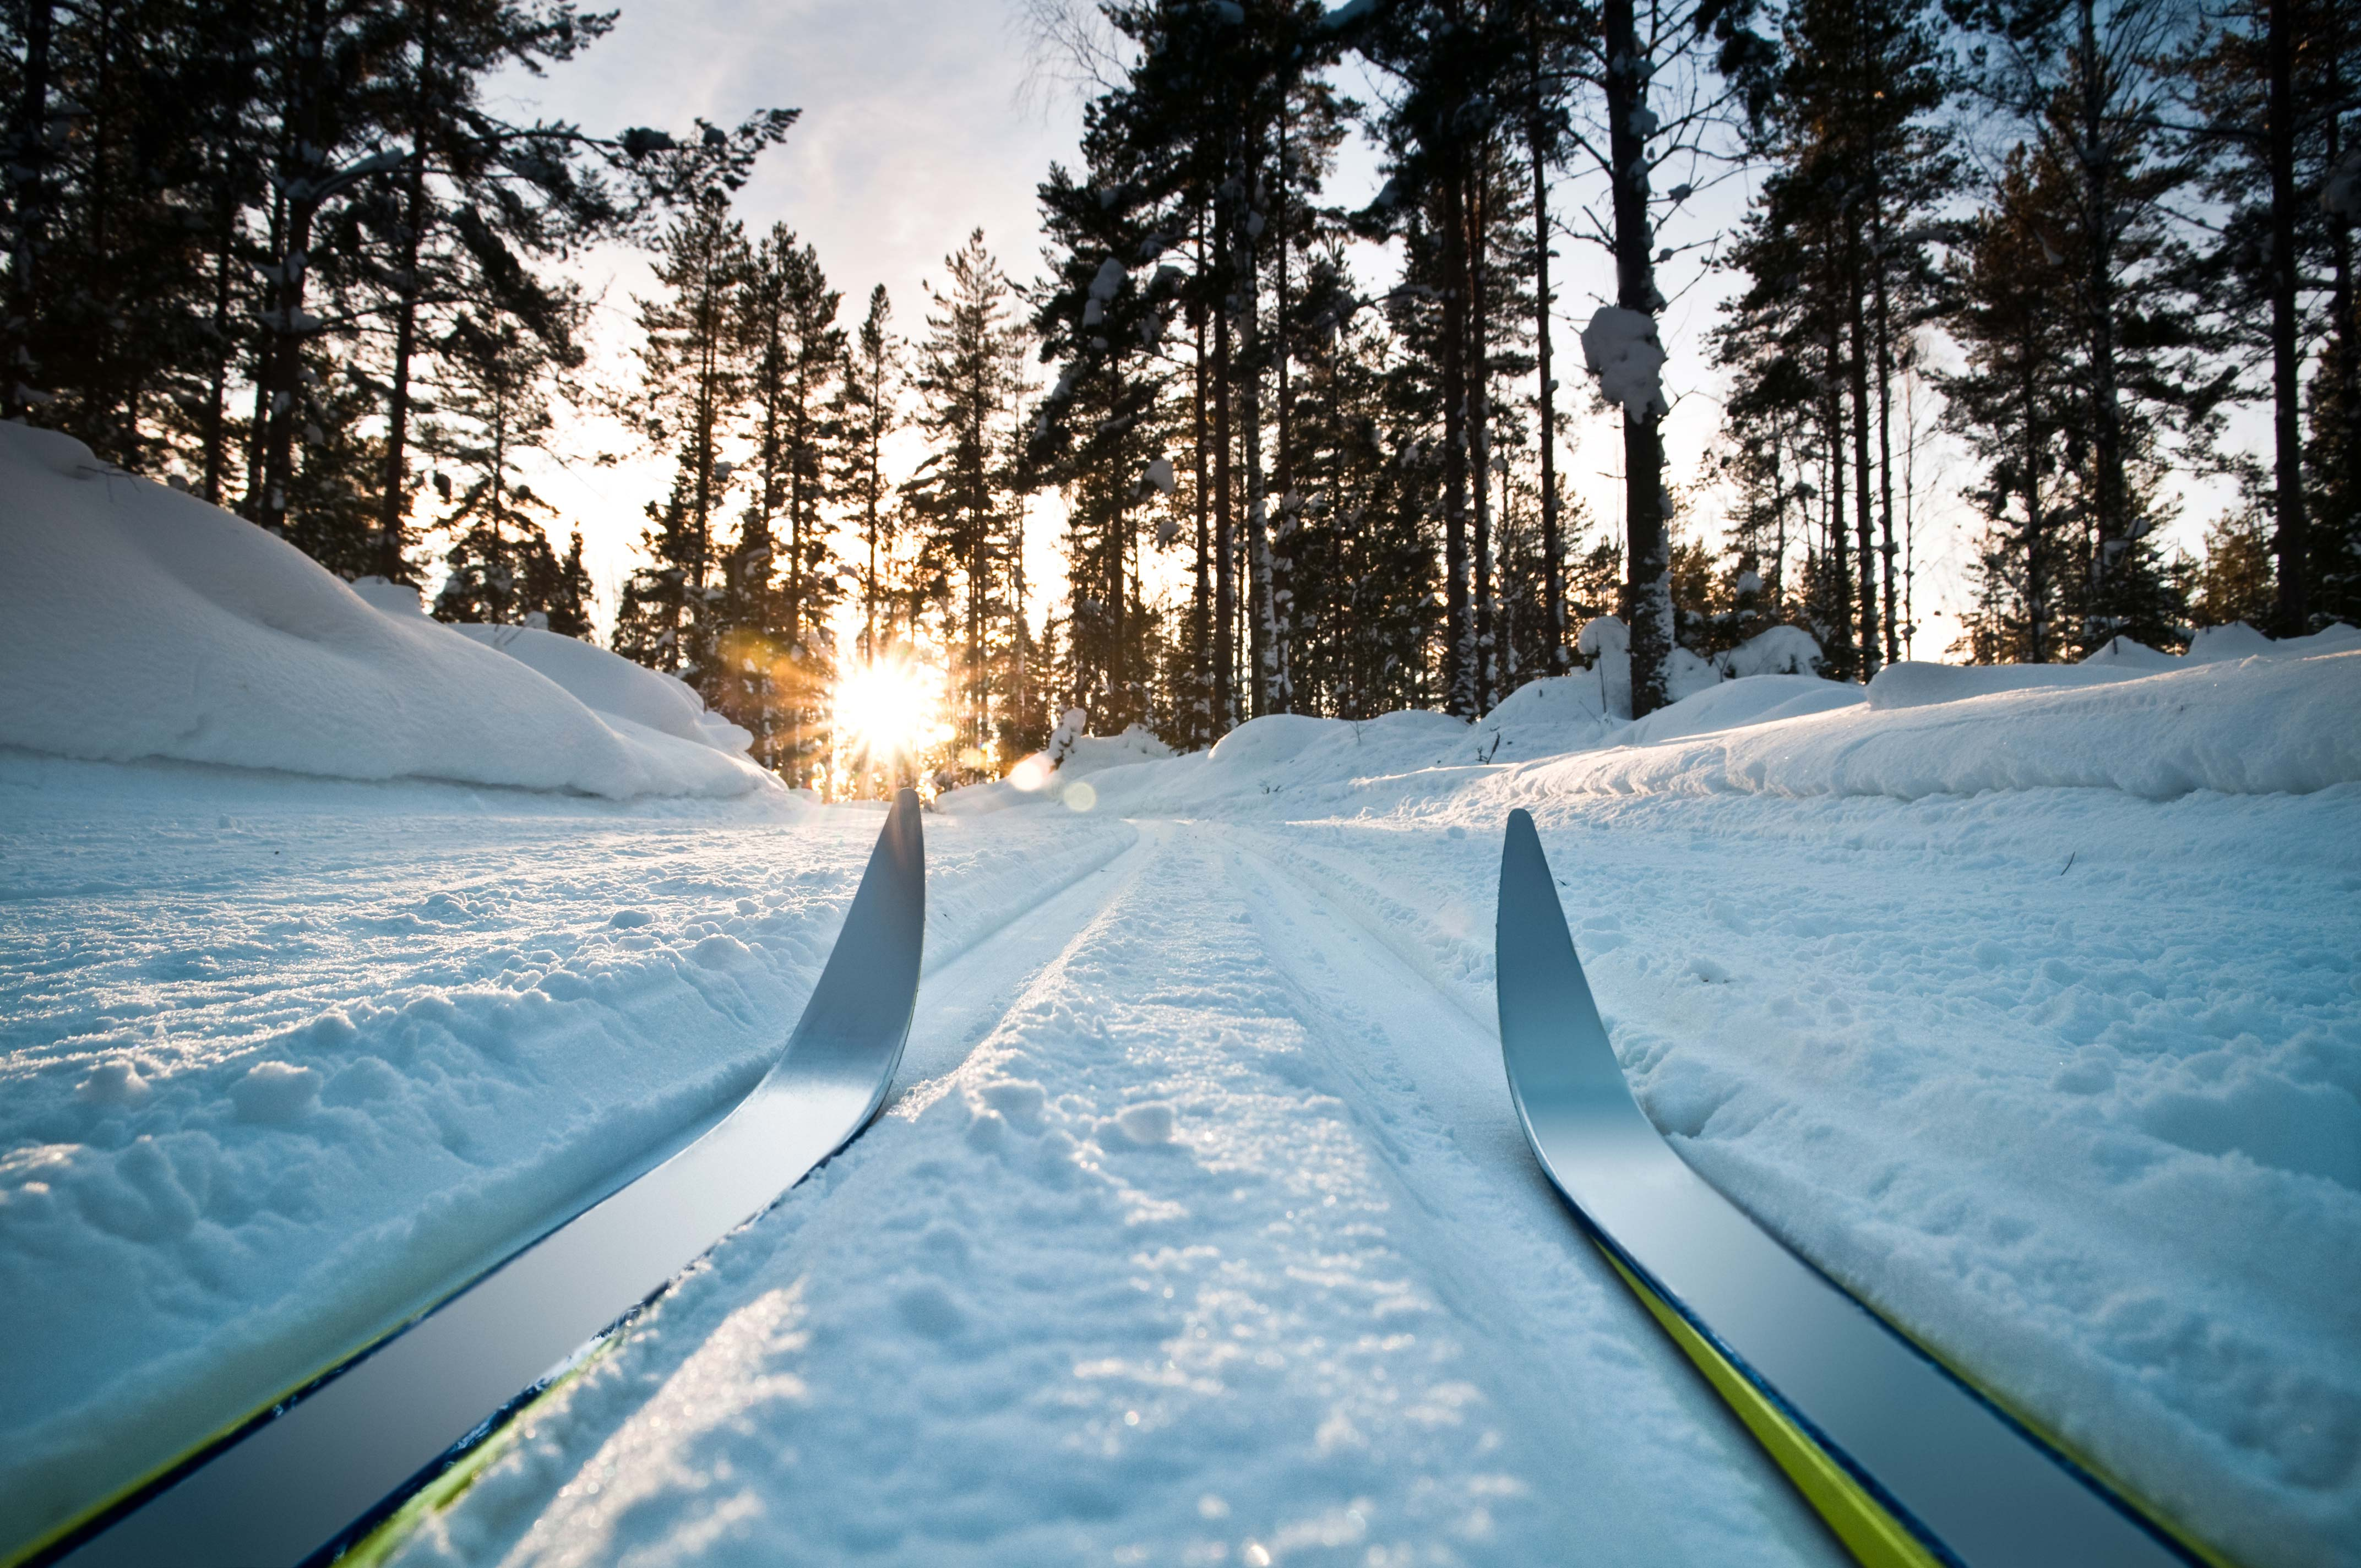 Different Styles of Cross Country Skiing